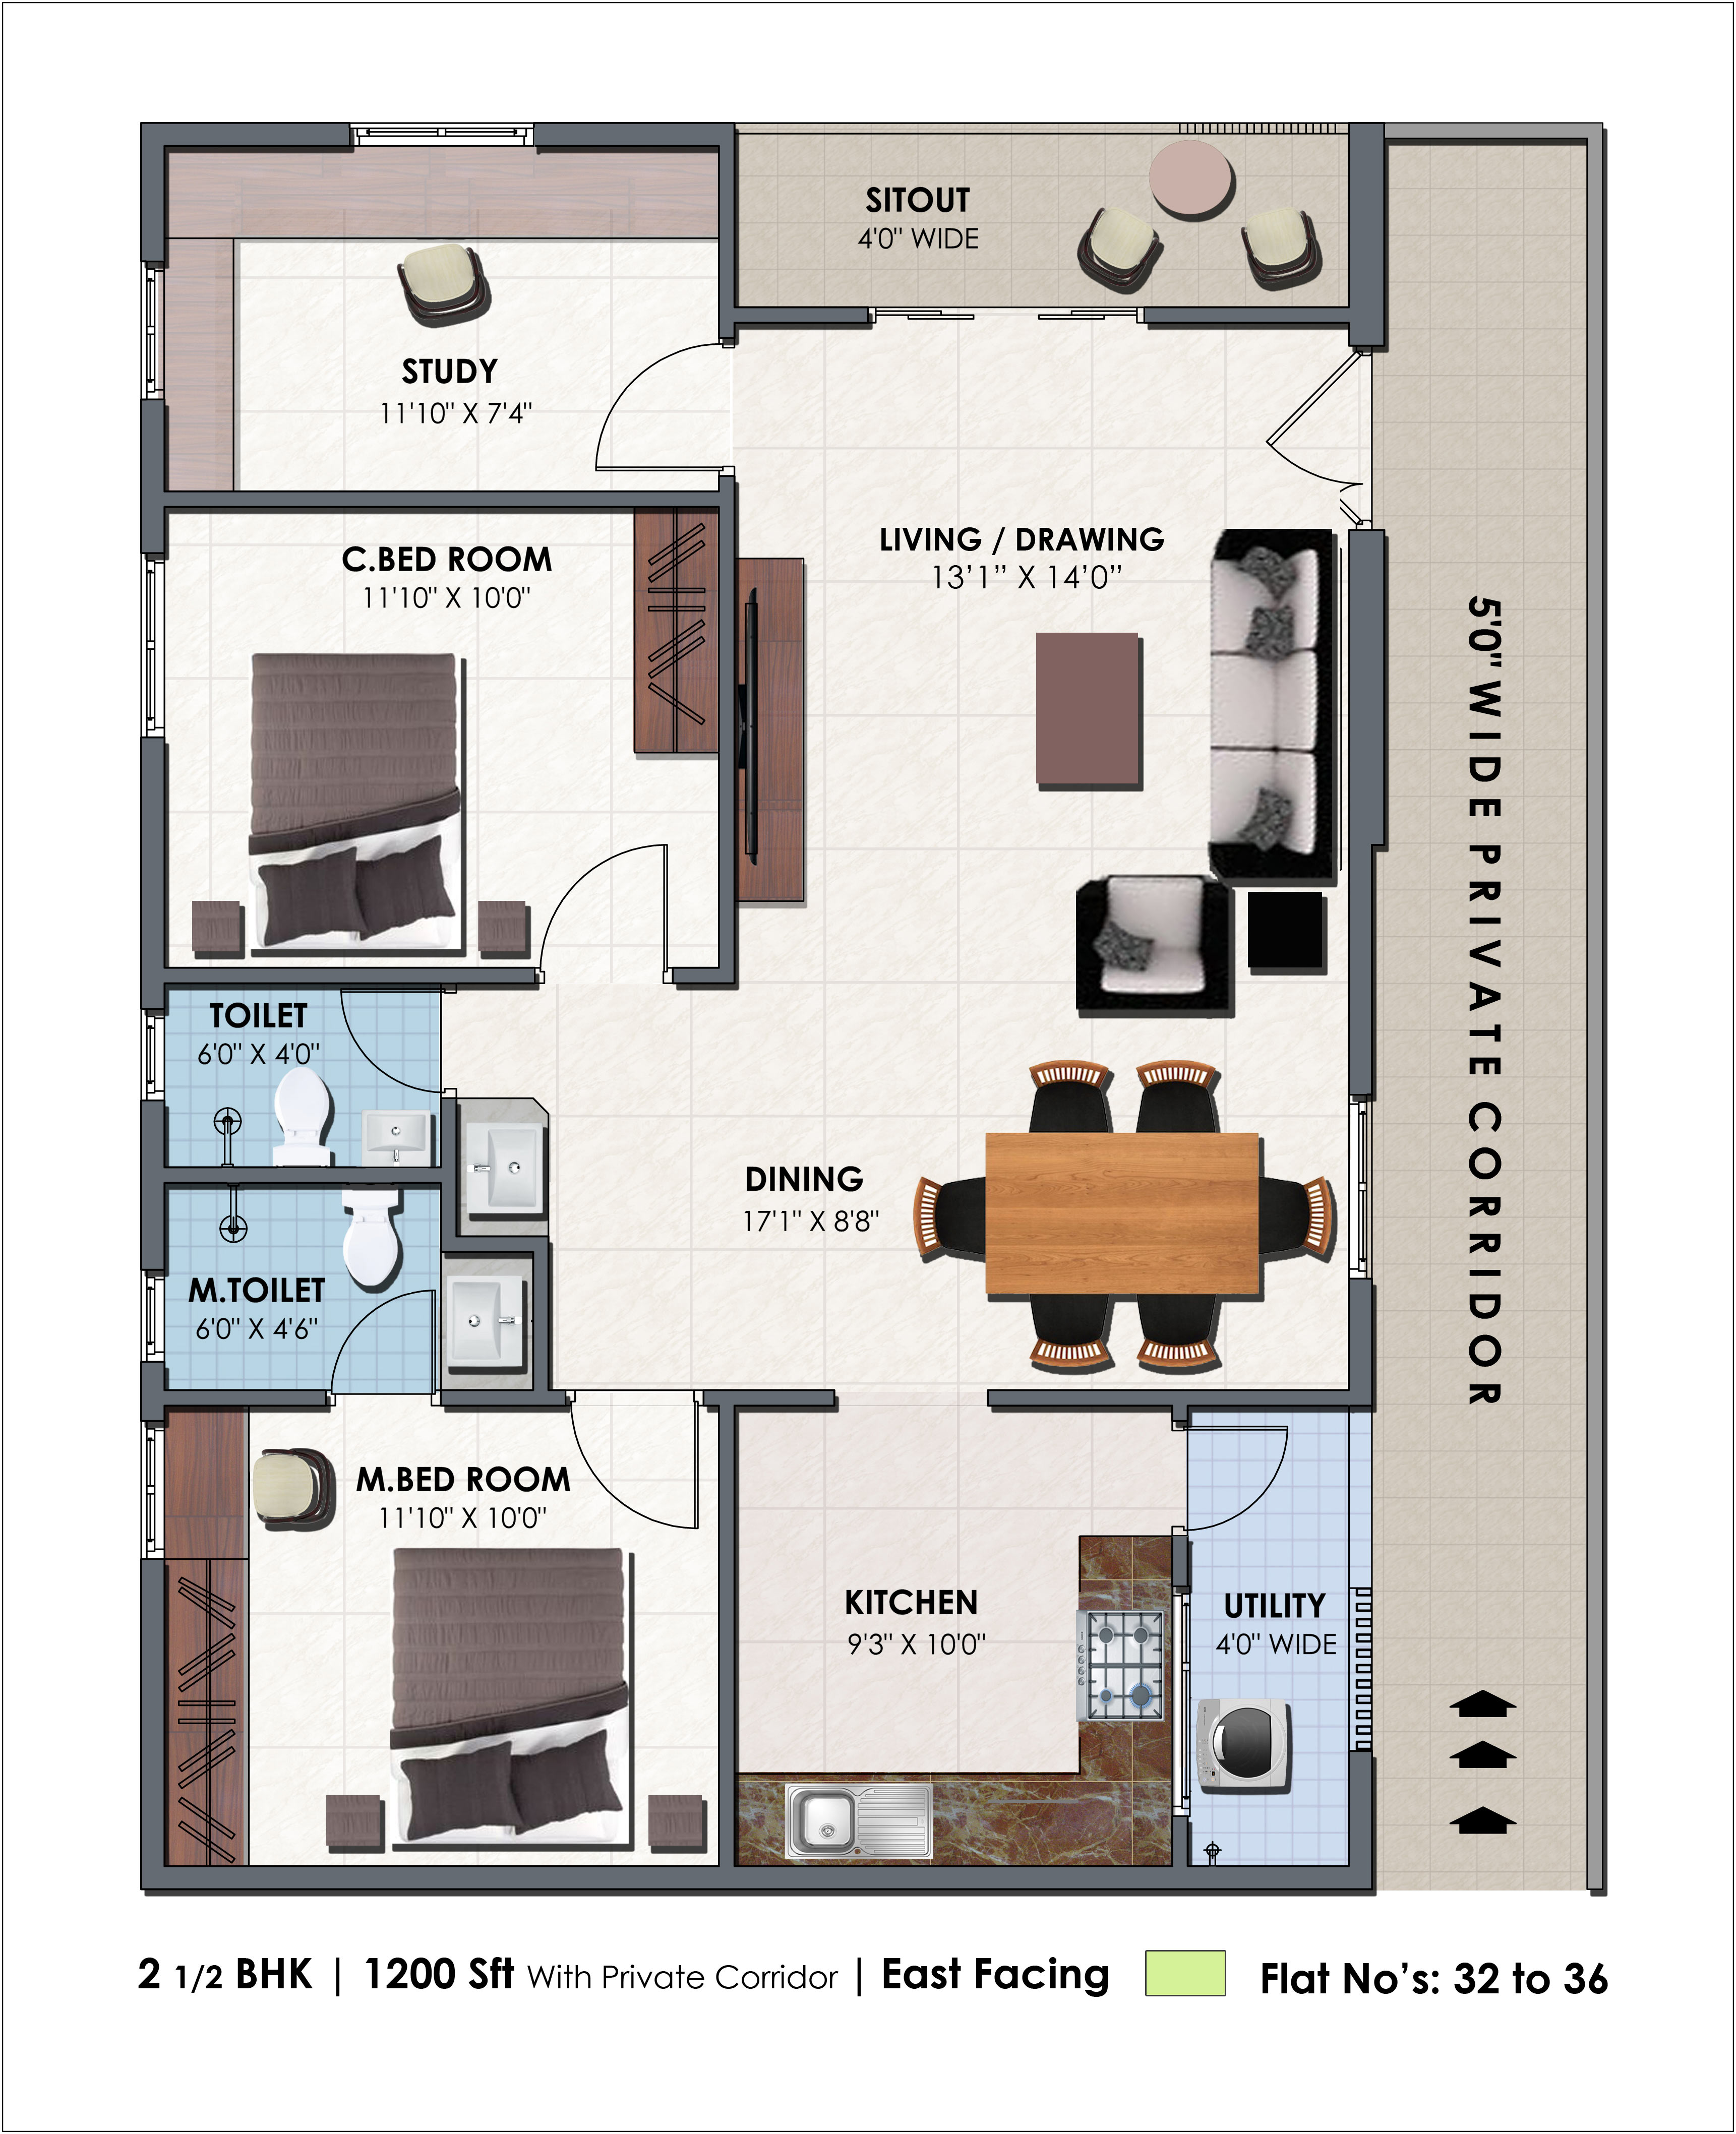 Plan layout plan b skateboarding myspace layout bedroom layout plan - Floor Plan 2 5 Bhk 1200 On Request Click To View